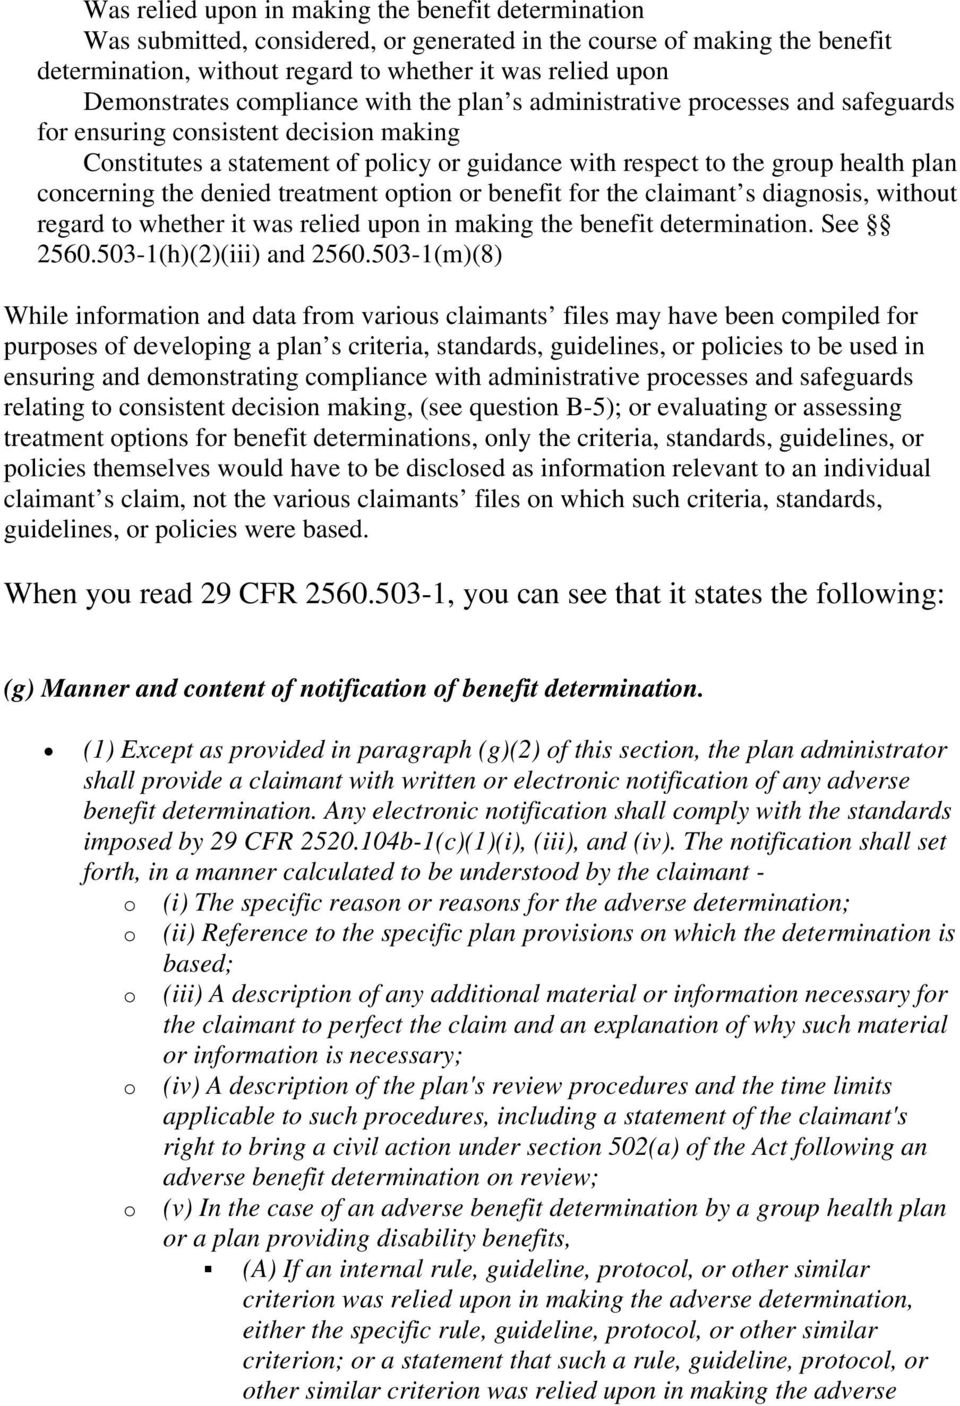 plan concerning the denied treatment option or benefit for the claimant s diagnosis, without regard to whether it was relied upon in making the benefit determination. See 2560.